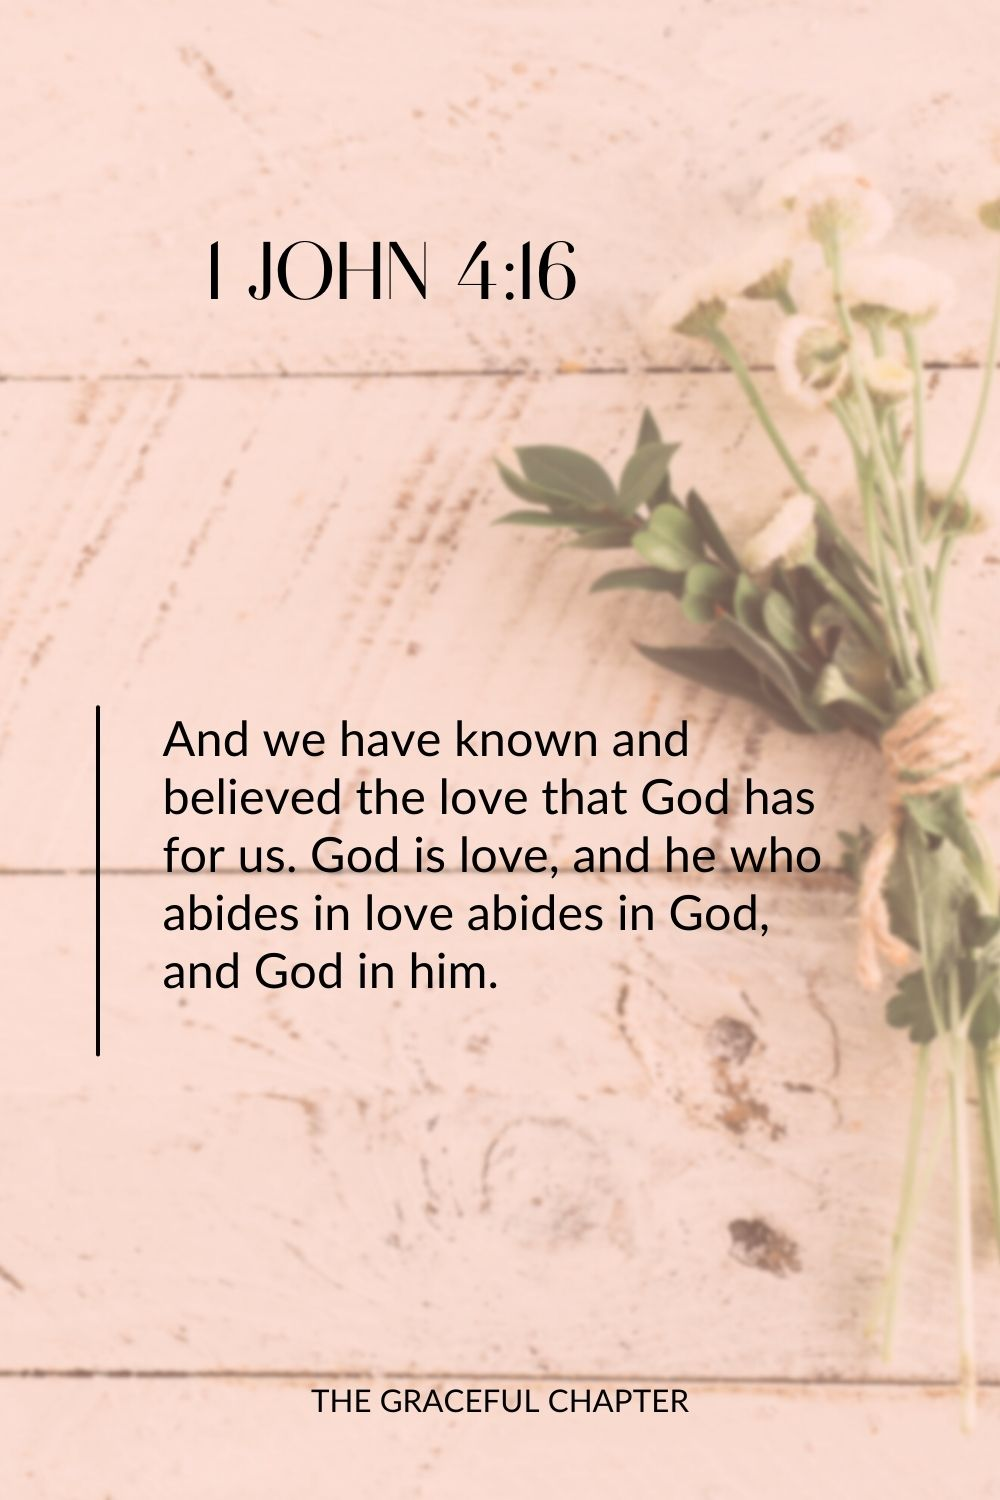 And we have known and believed the love that God has for us. God is love, and he who abides in love abides in God, and God in him. 1 John 4:16